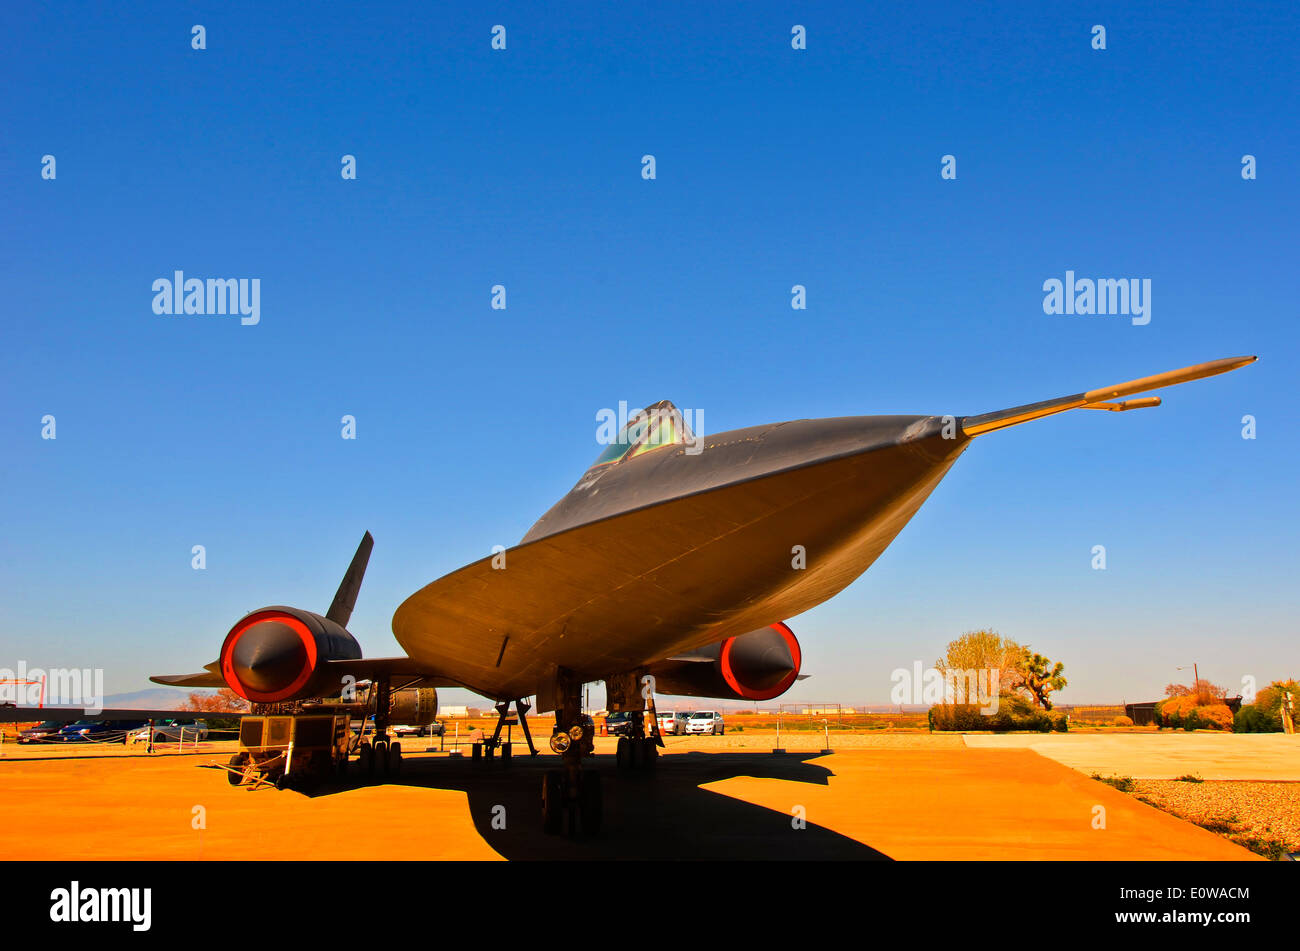 Lockheed A-12 'Blackbird aircraft. It was used in covert operations by the CIA in the 1960's. Stock Photo